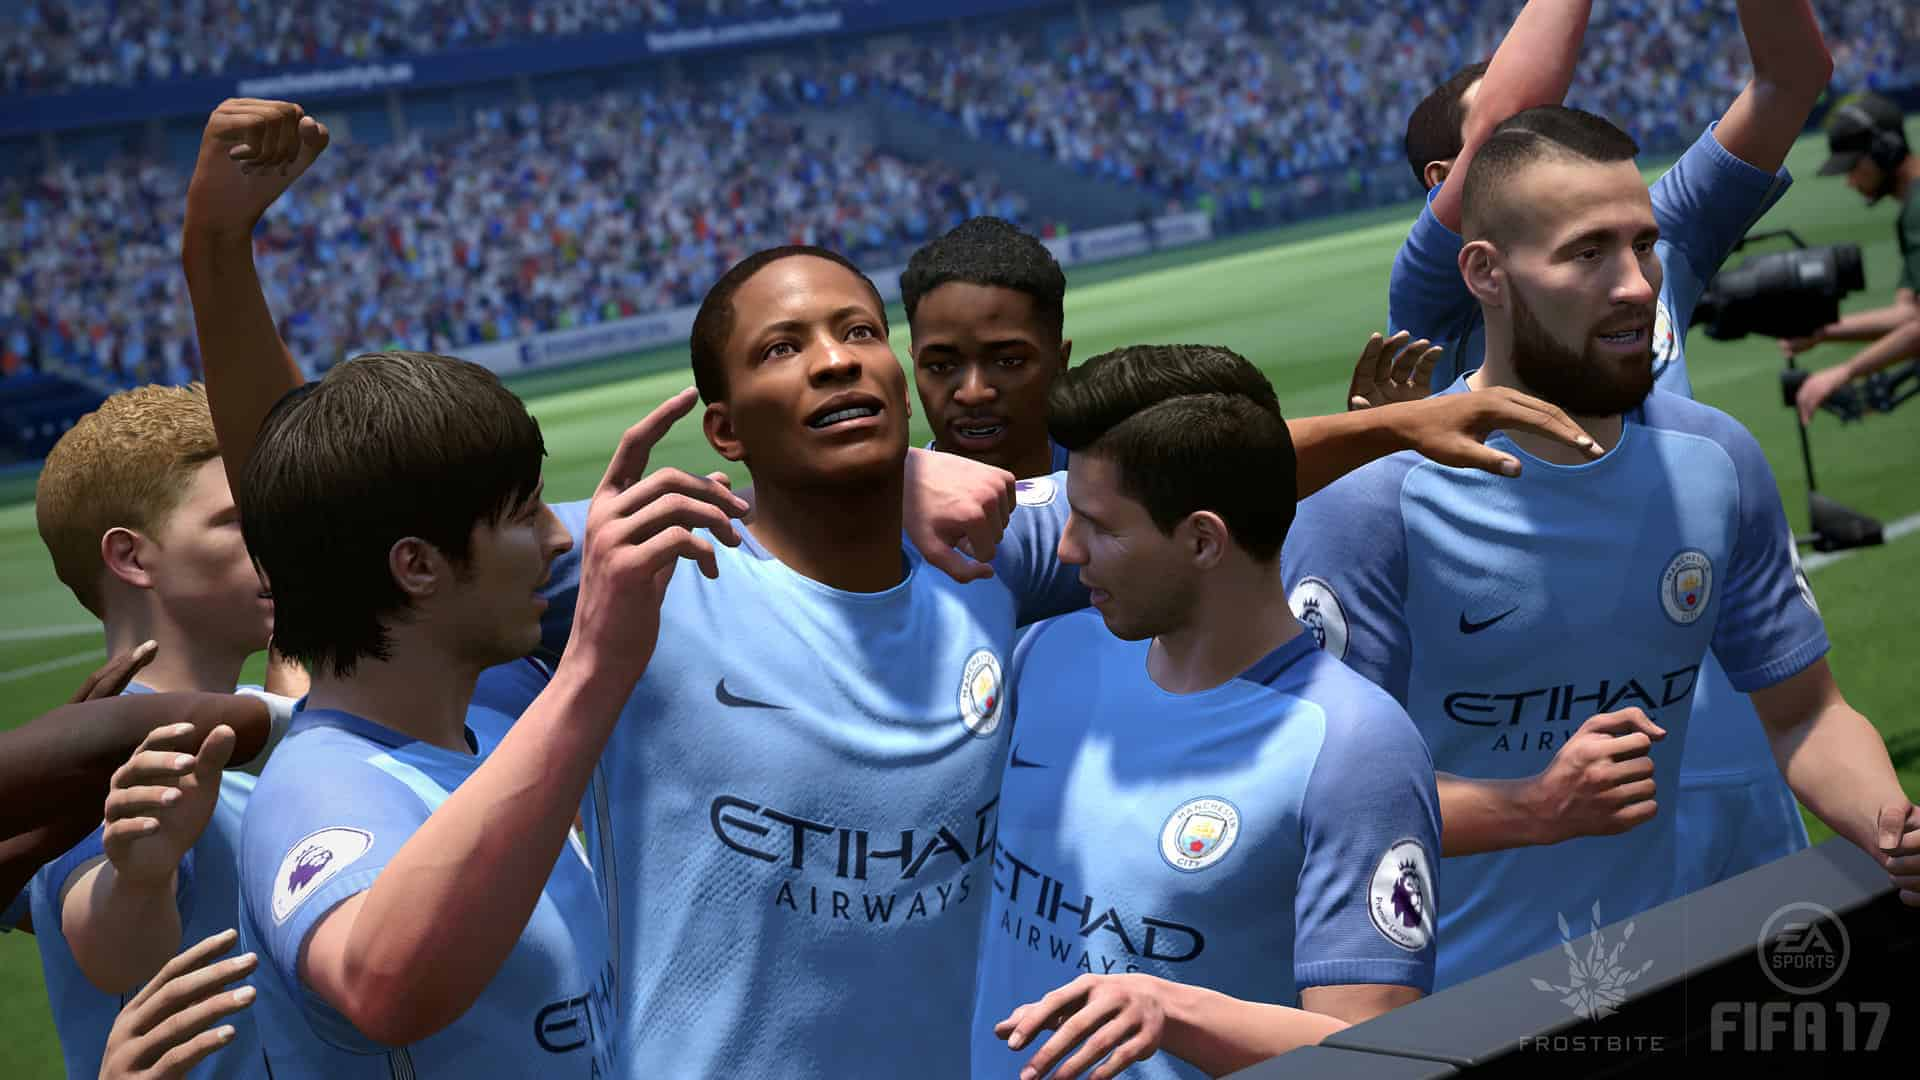 fifa 17 games for pc free download full version